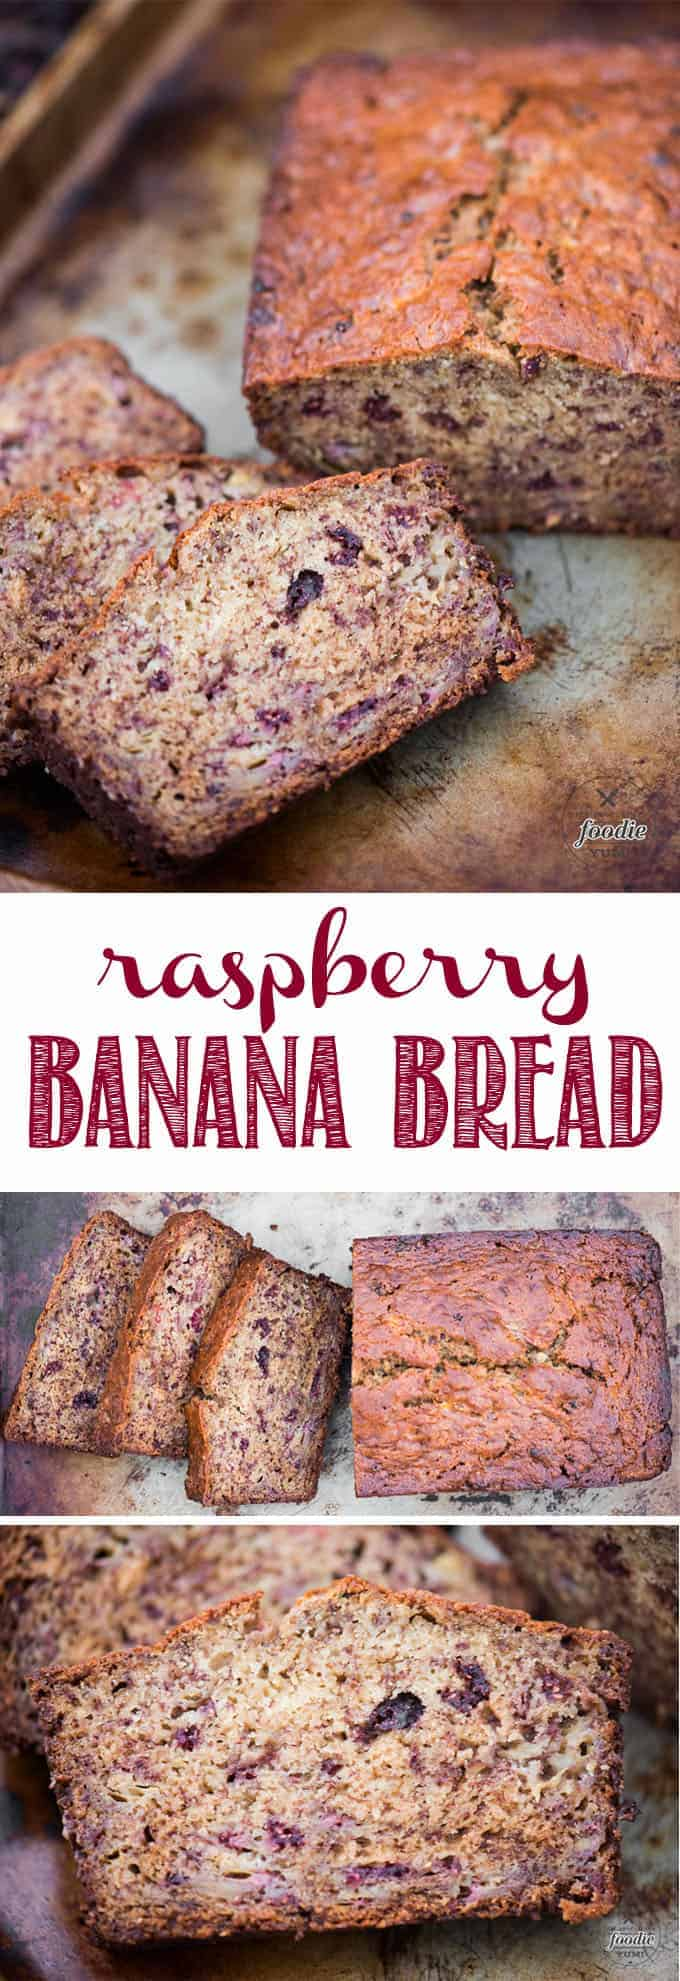 Raspberry Banana Bread uses a traditional, moist, easy banana bread recipe and incorporates freeze dried raspberries. Perfect for breakfast or as a snack on the go, Raspberry Banana Bread is a new way to enjoy this traditional favorite recipe! #rasberry #bananabread #raspberrybananabread #easyrecipe